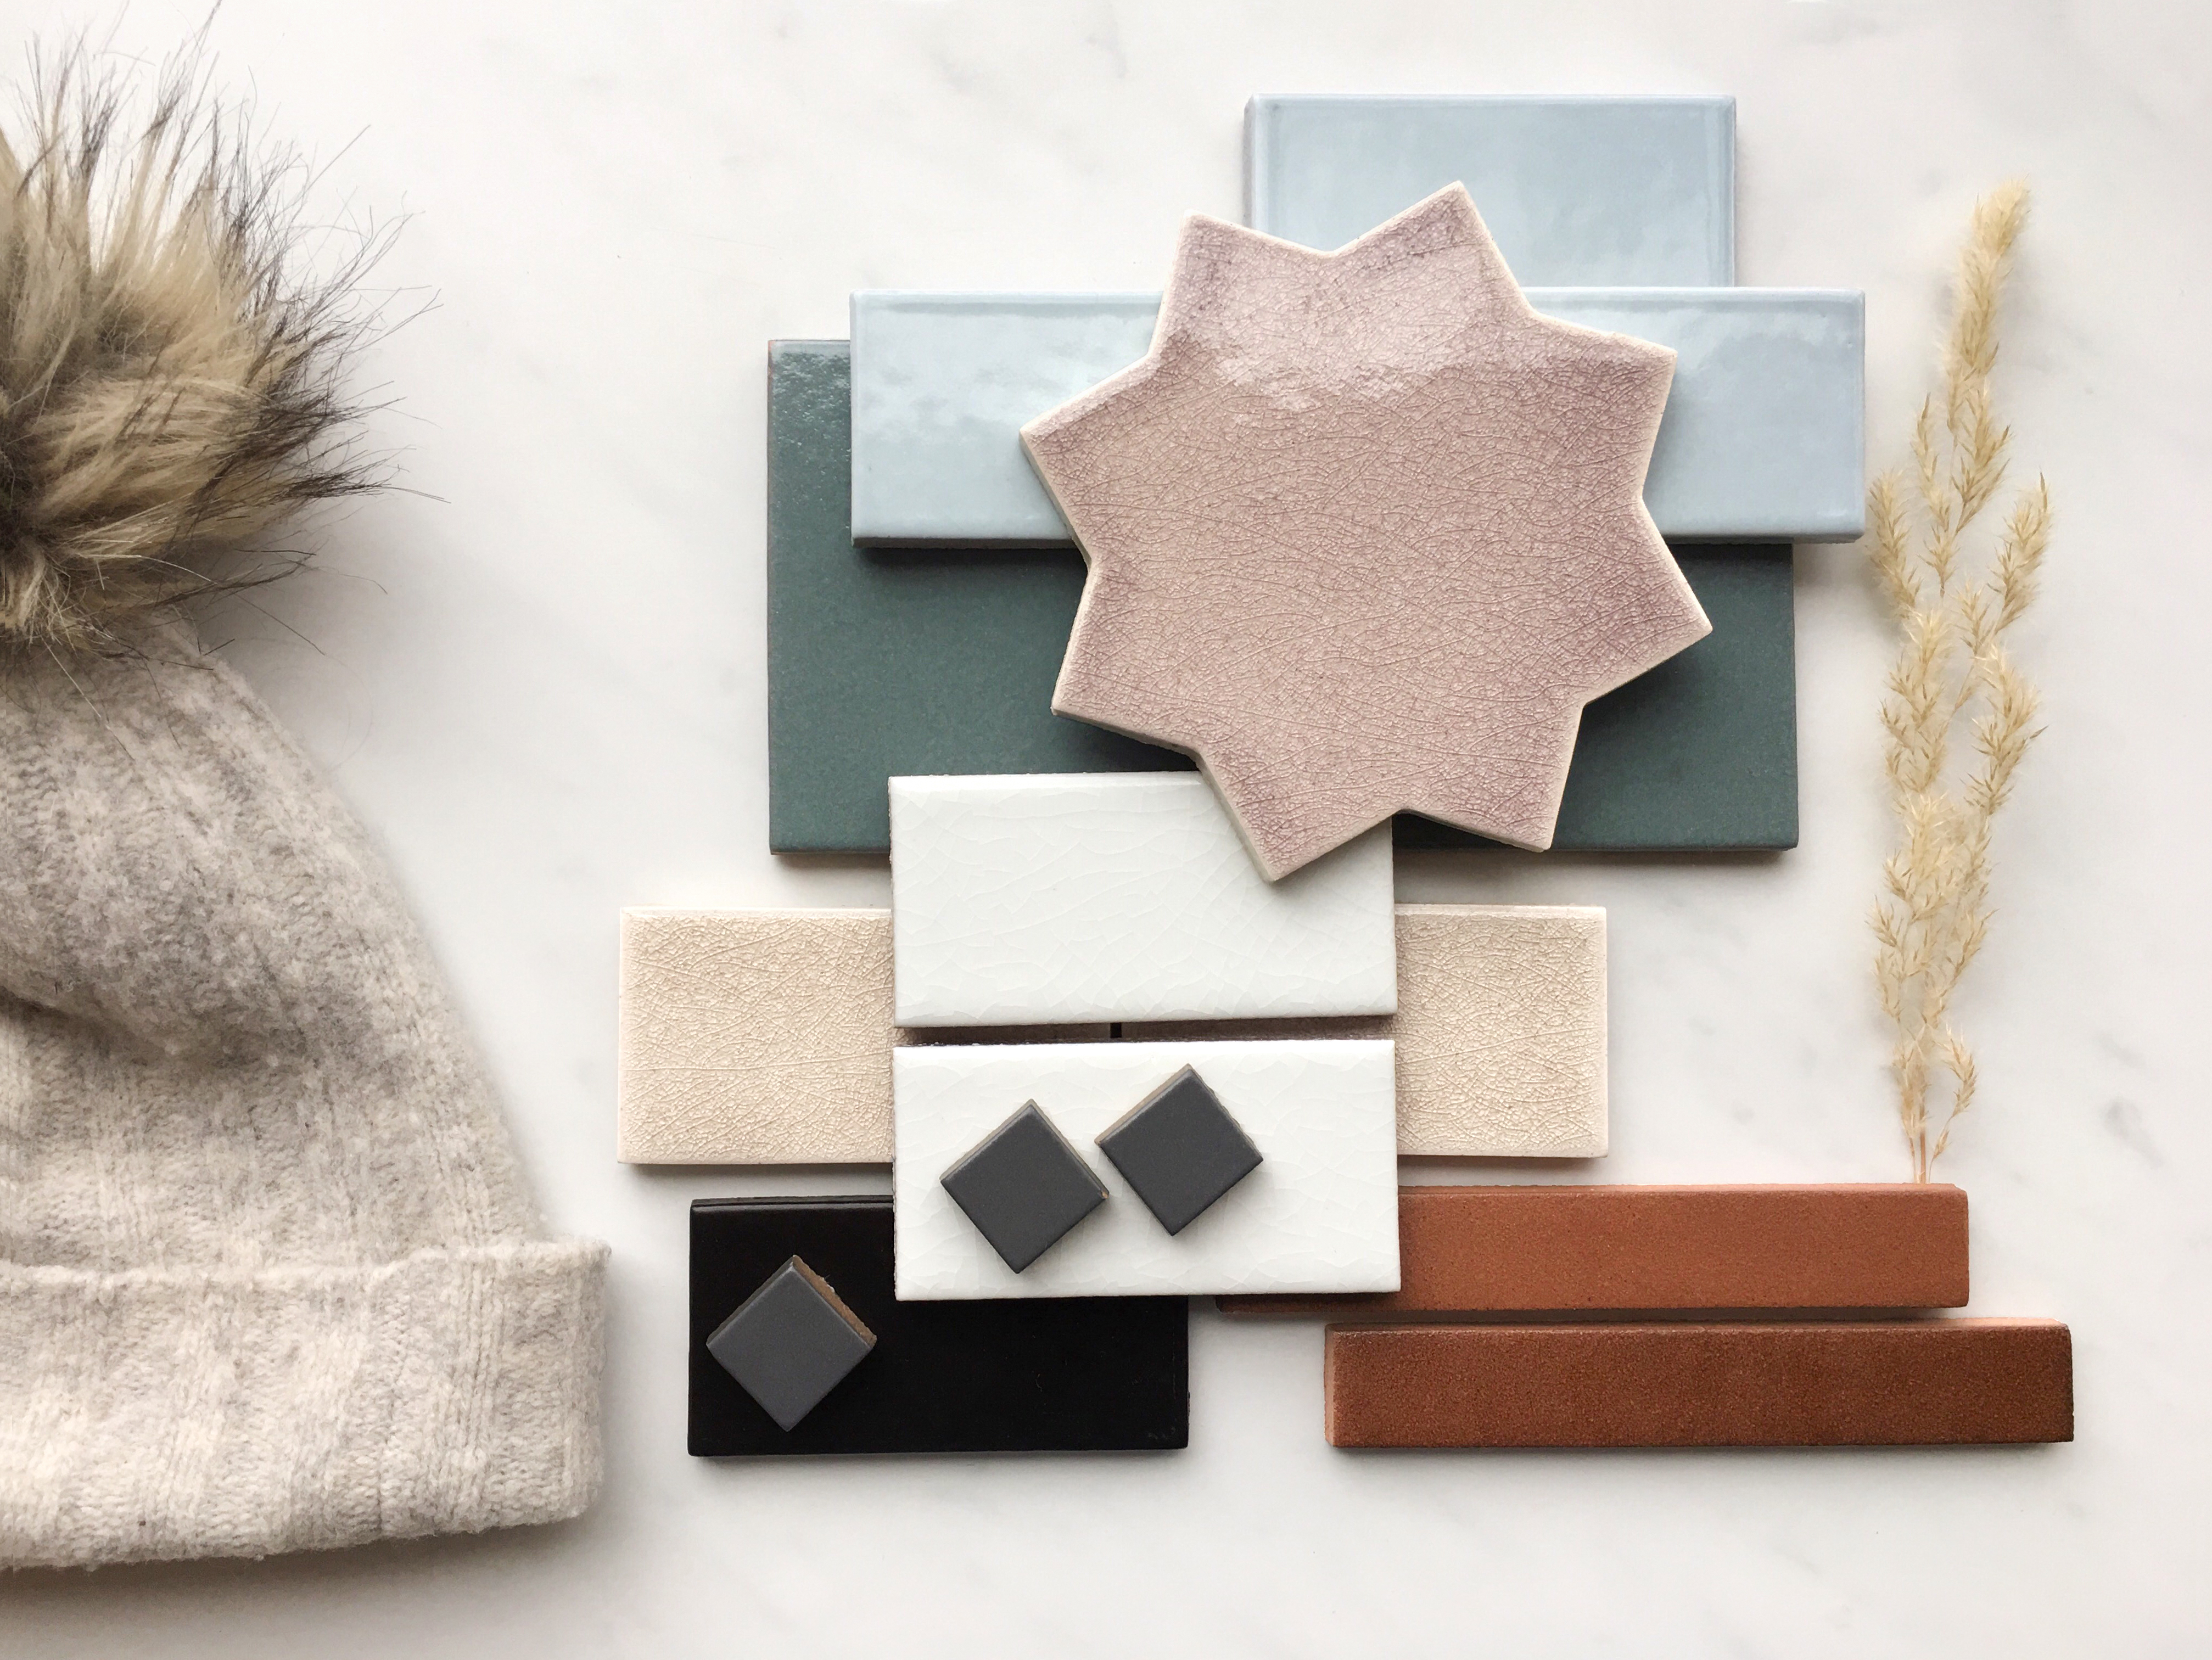 2019_q1_winter_prairie_story_all_colors_crater_lake_basalt_birch_flagstone_mushroom_antique_frost_magnetite_stacked_hat.jpg?mtime=20190207093804#asset:436000